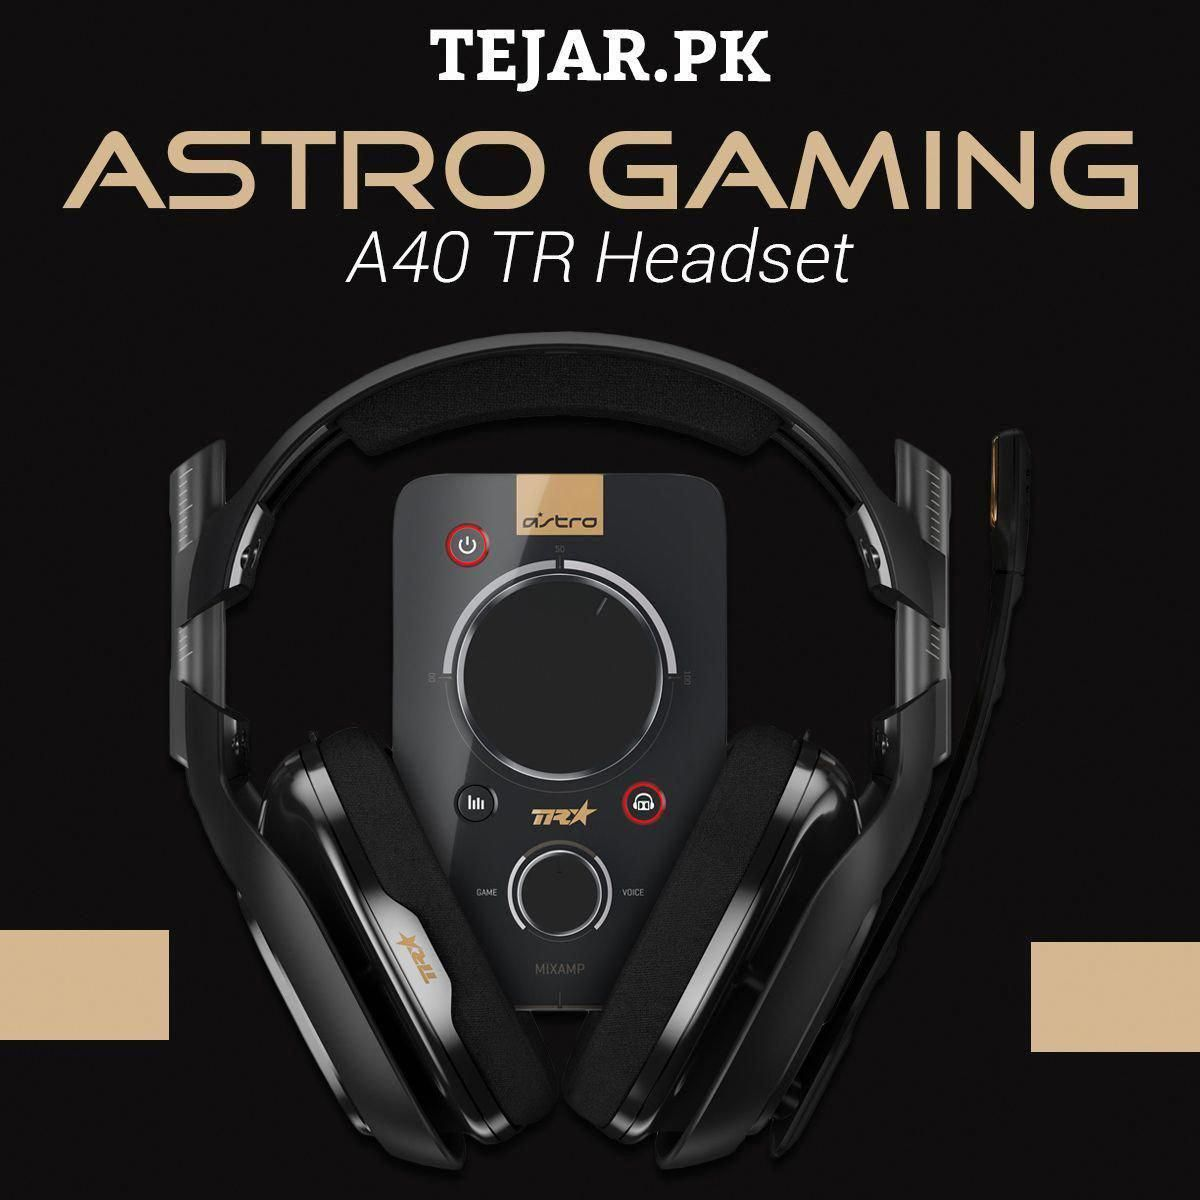 The ASTRO A40 TR Headset for PS4, PC, and Mac is the